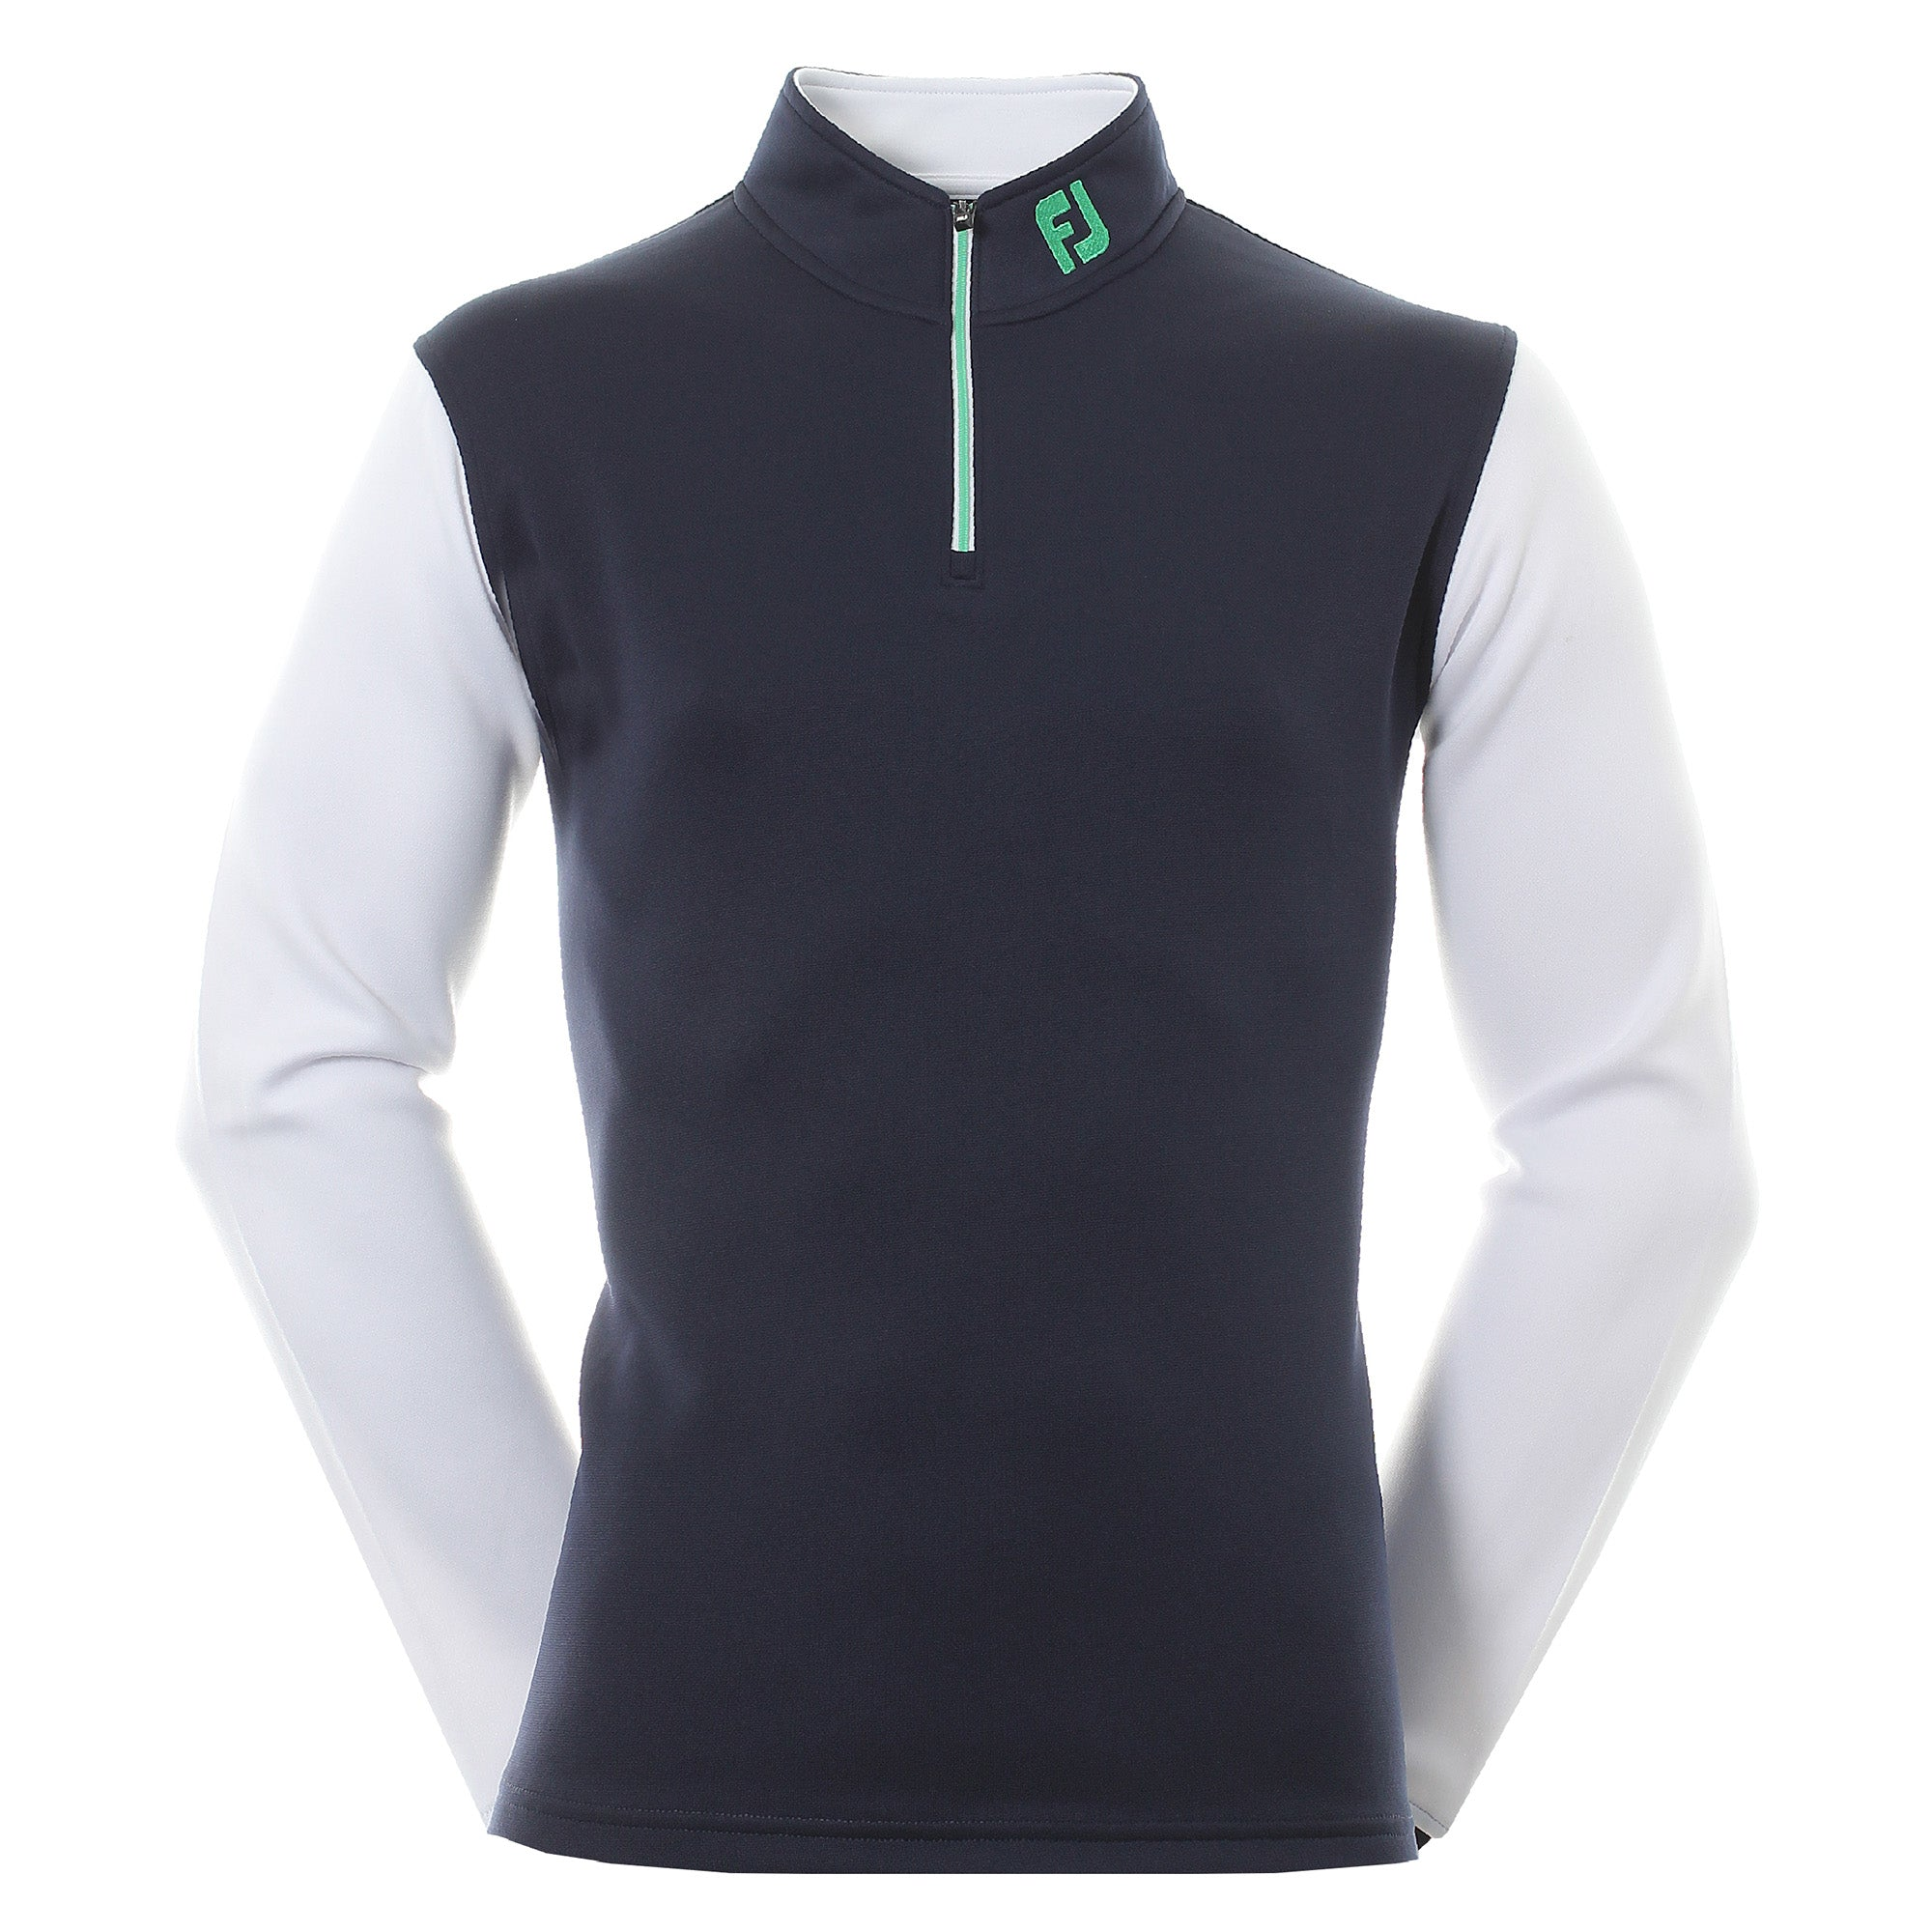 FootJoy Double Knit Chill Out Golf Pullover